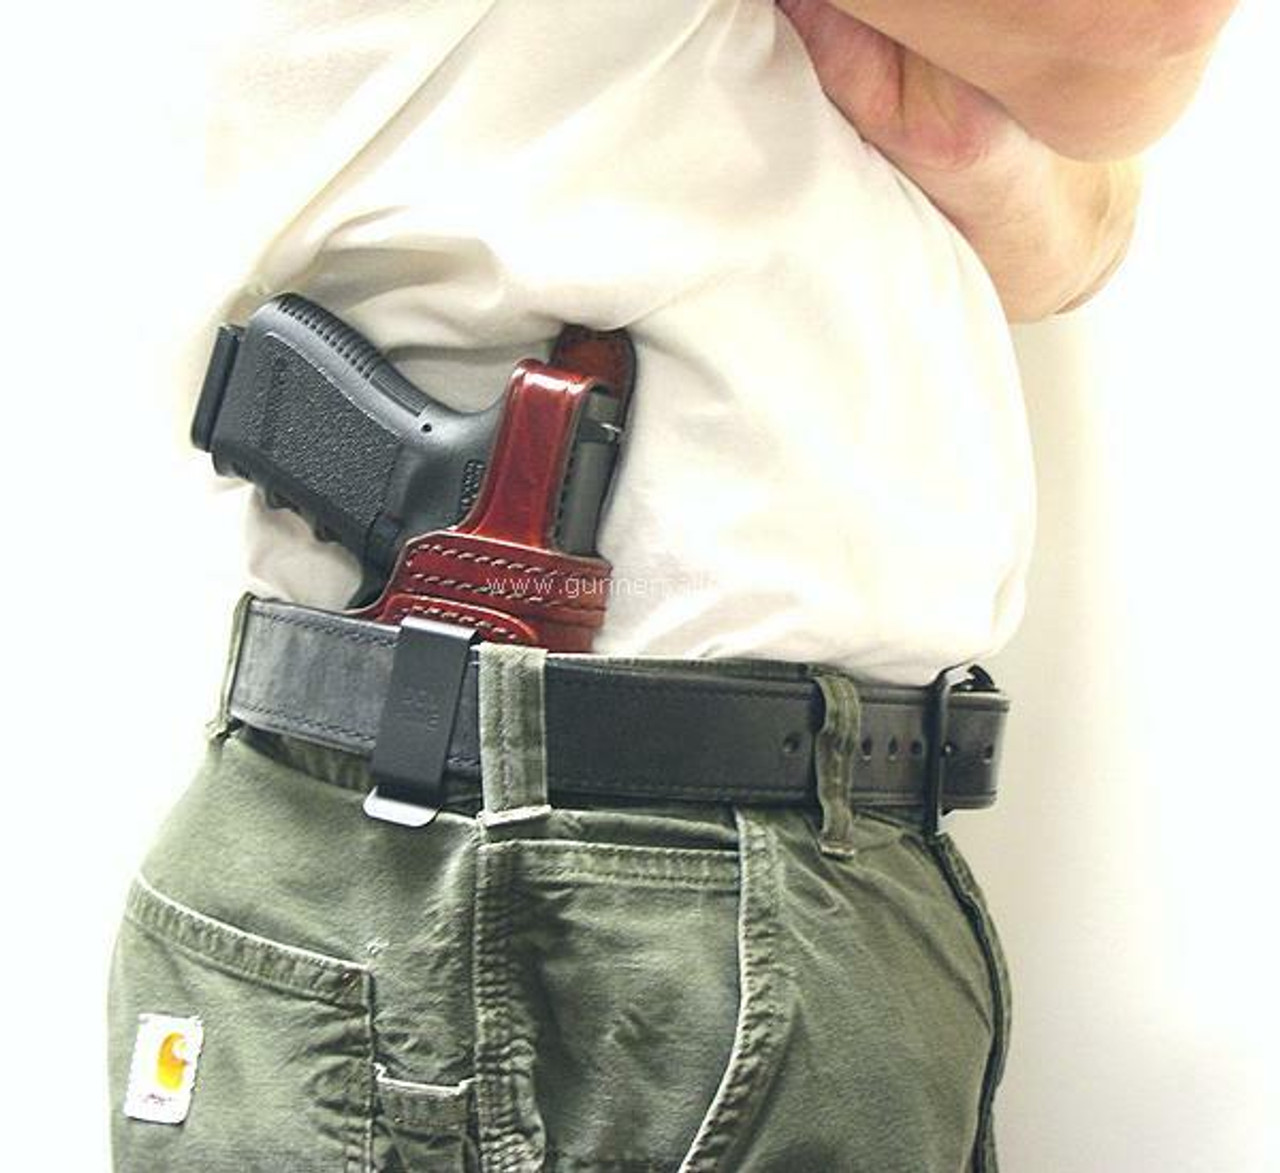 Right Hand - Shown on the Belt with a Glock 19 for Demonstration Purposes